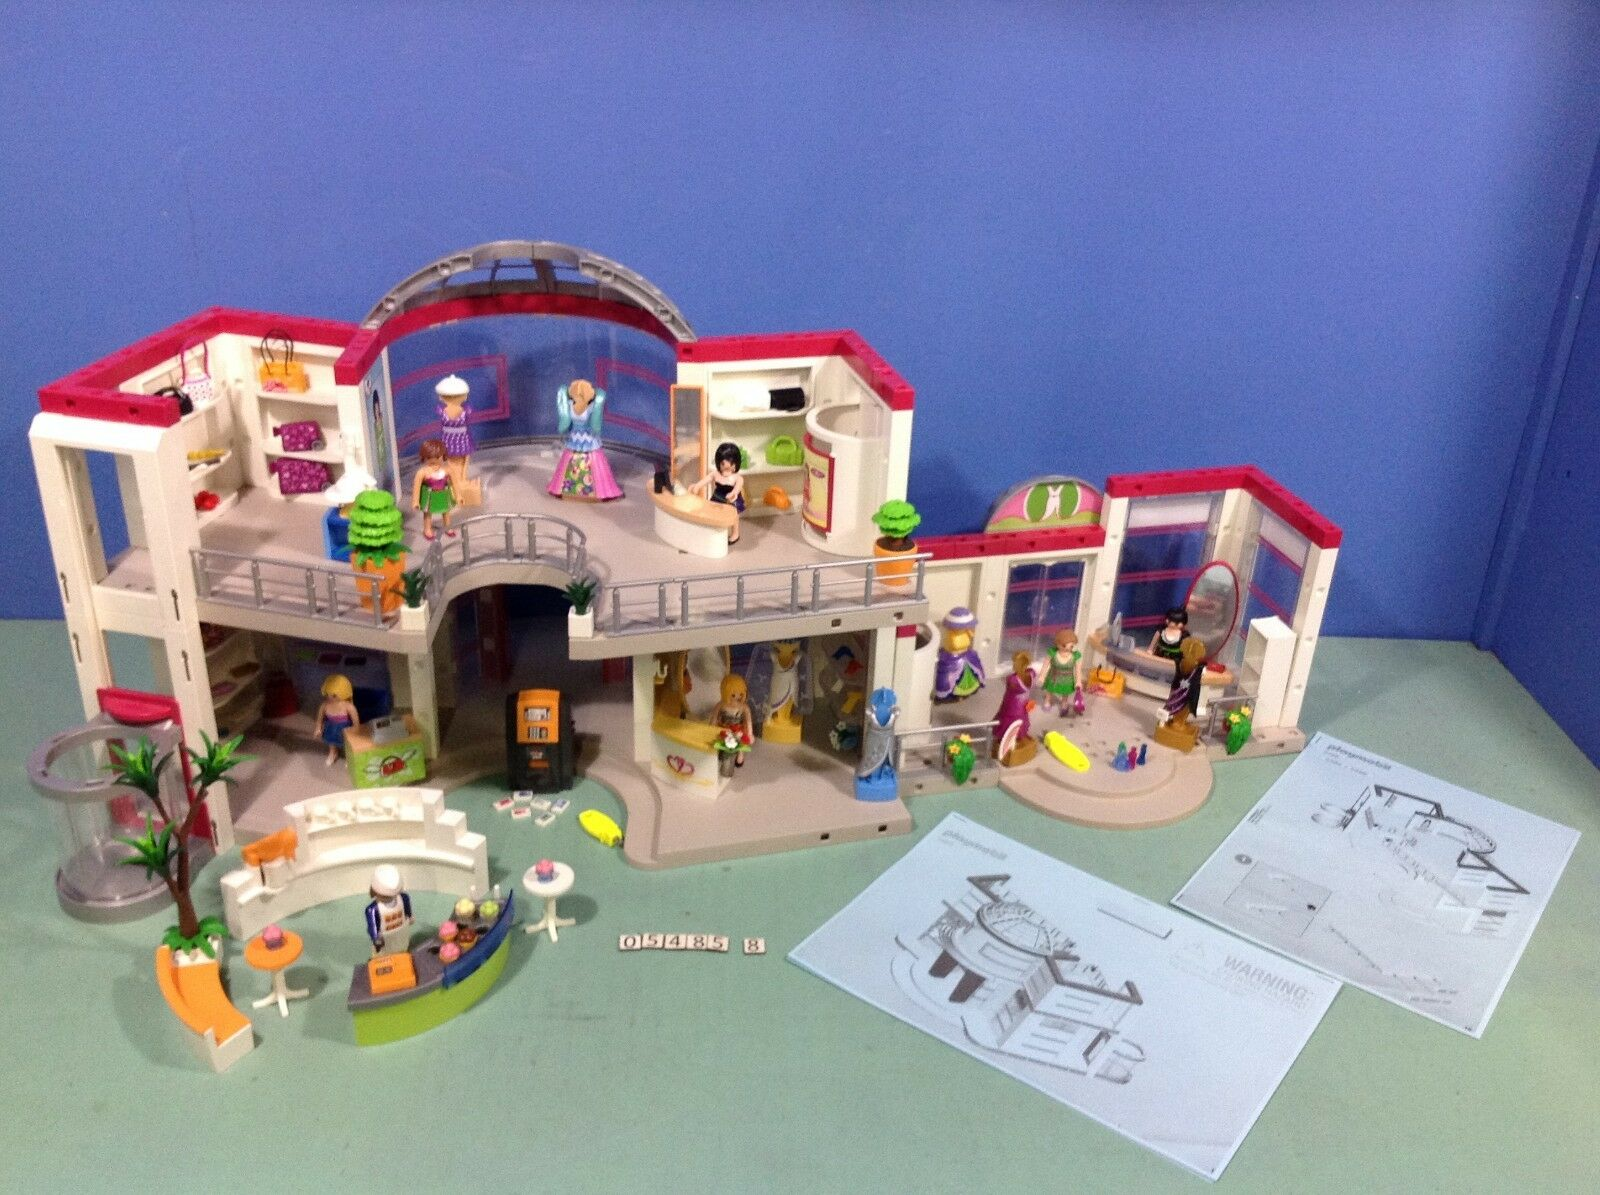 (O5485.8) Playmobil grand magasin ref 5485 + extension ref 5486